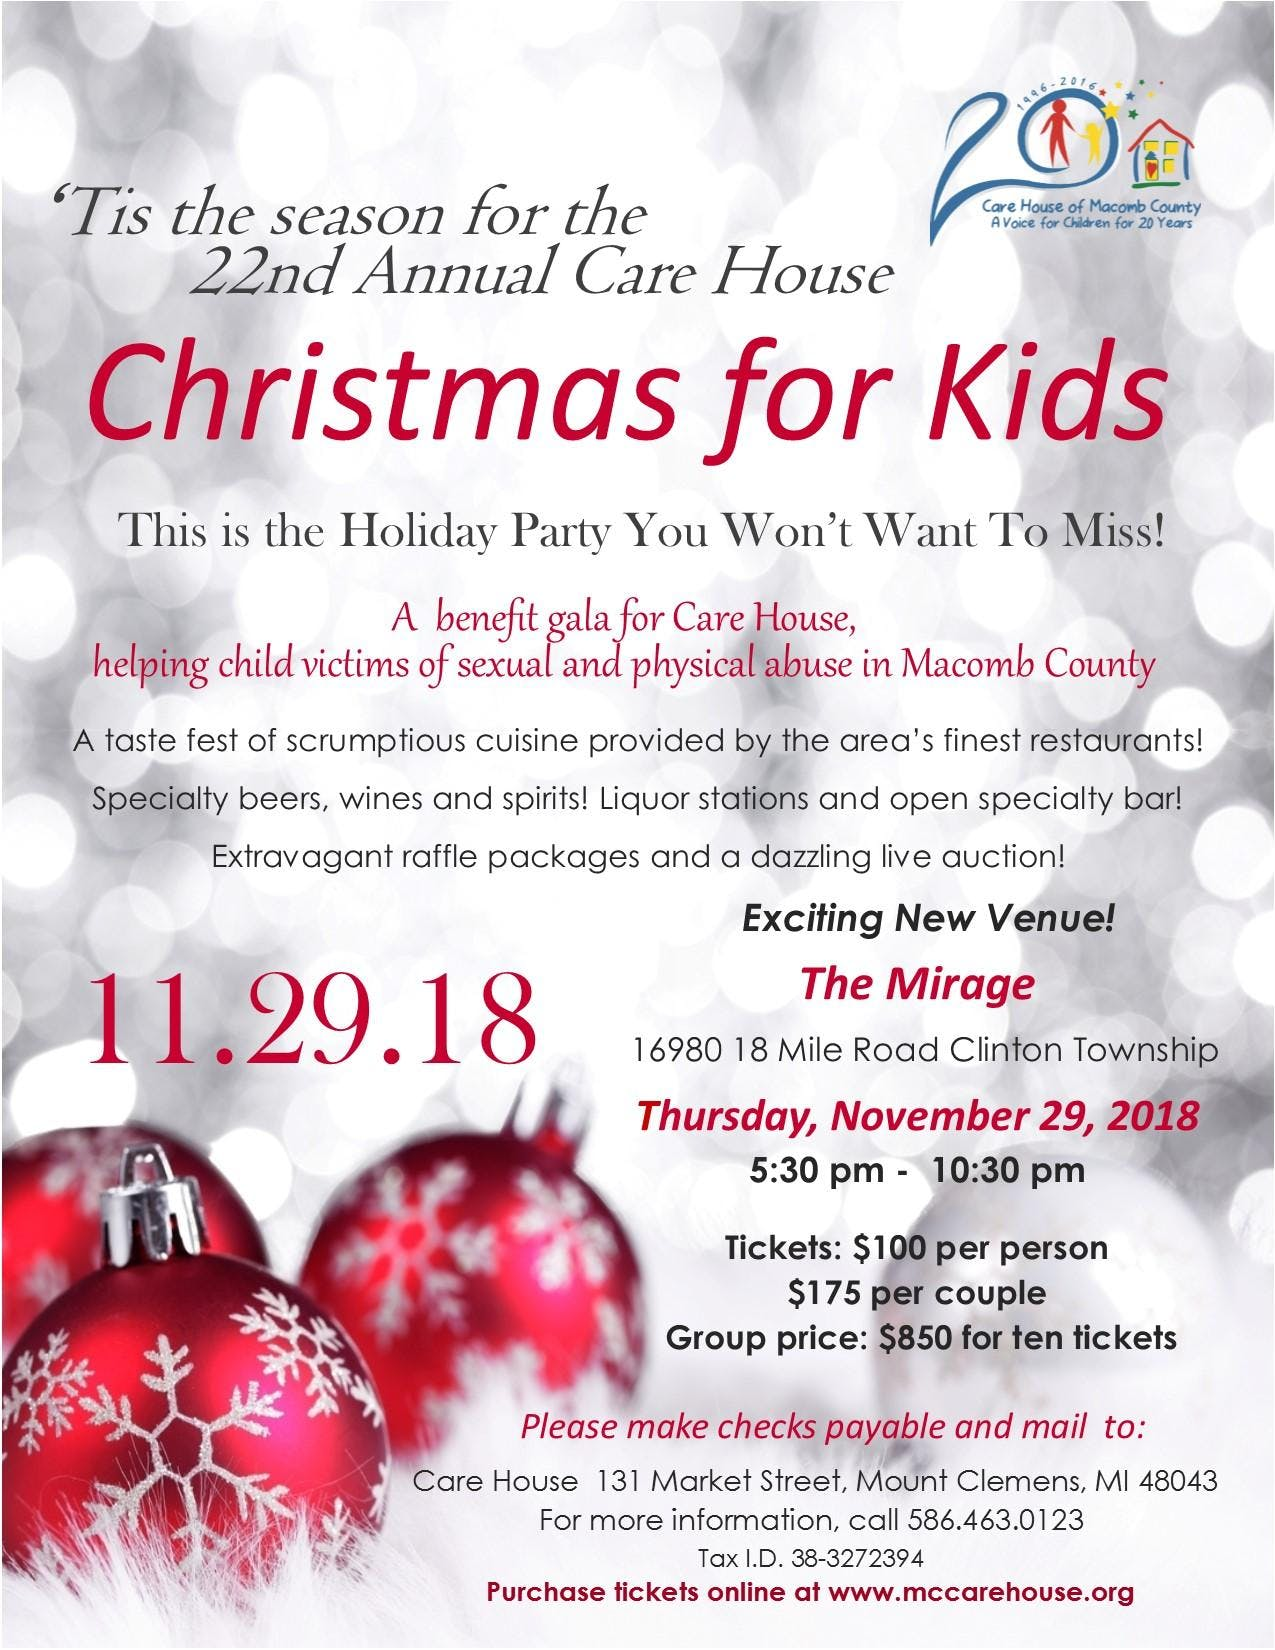 22nd Annual Care House Christmas for Kids Gala - 29 NOV 2018